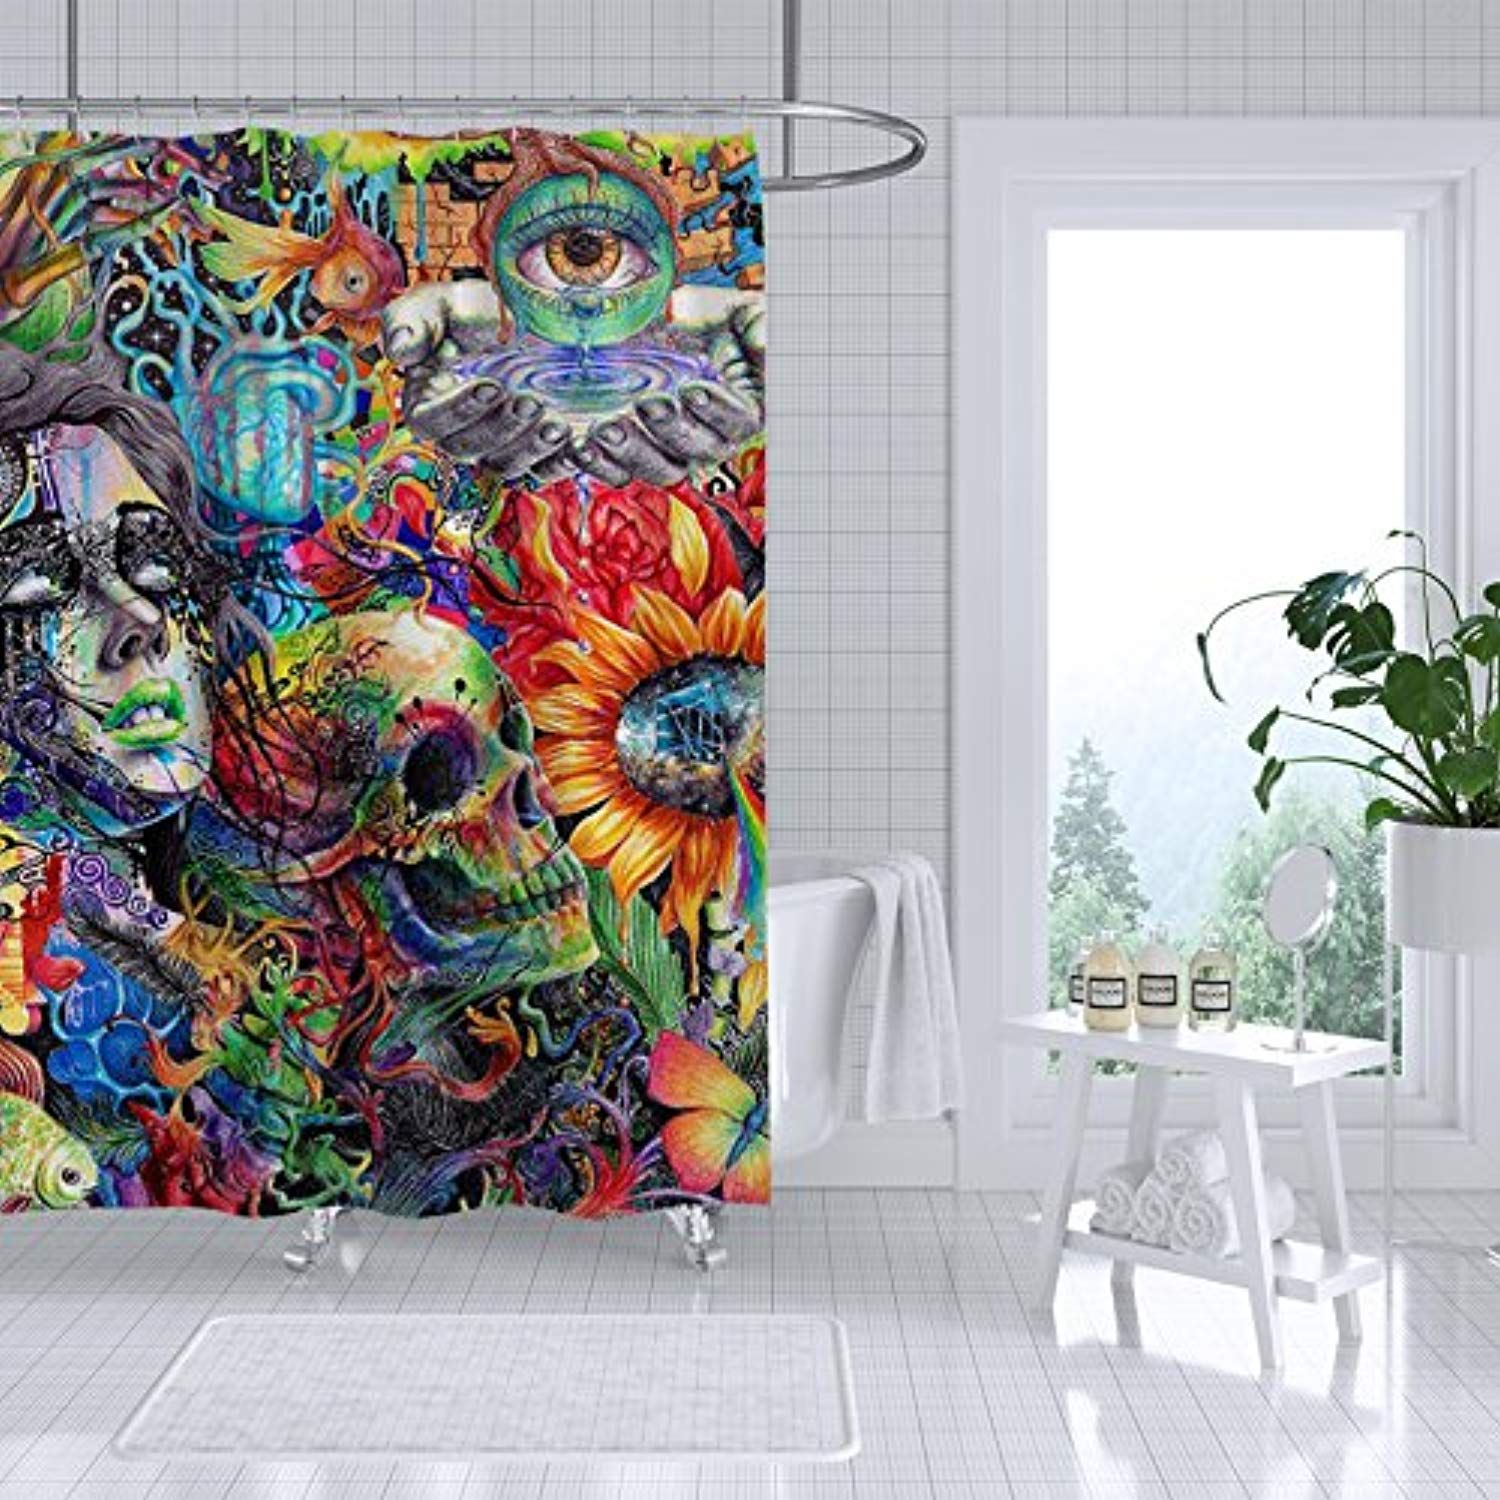 Adiucmcz Crazy Trippy Shower Curtain Fabric Bathroom Decor Set Waterproof Mildew With 12 Curtain Hooks 72 I Fabric Shower Curtains Bathroom Decor Sets Curtains